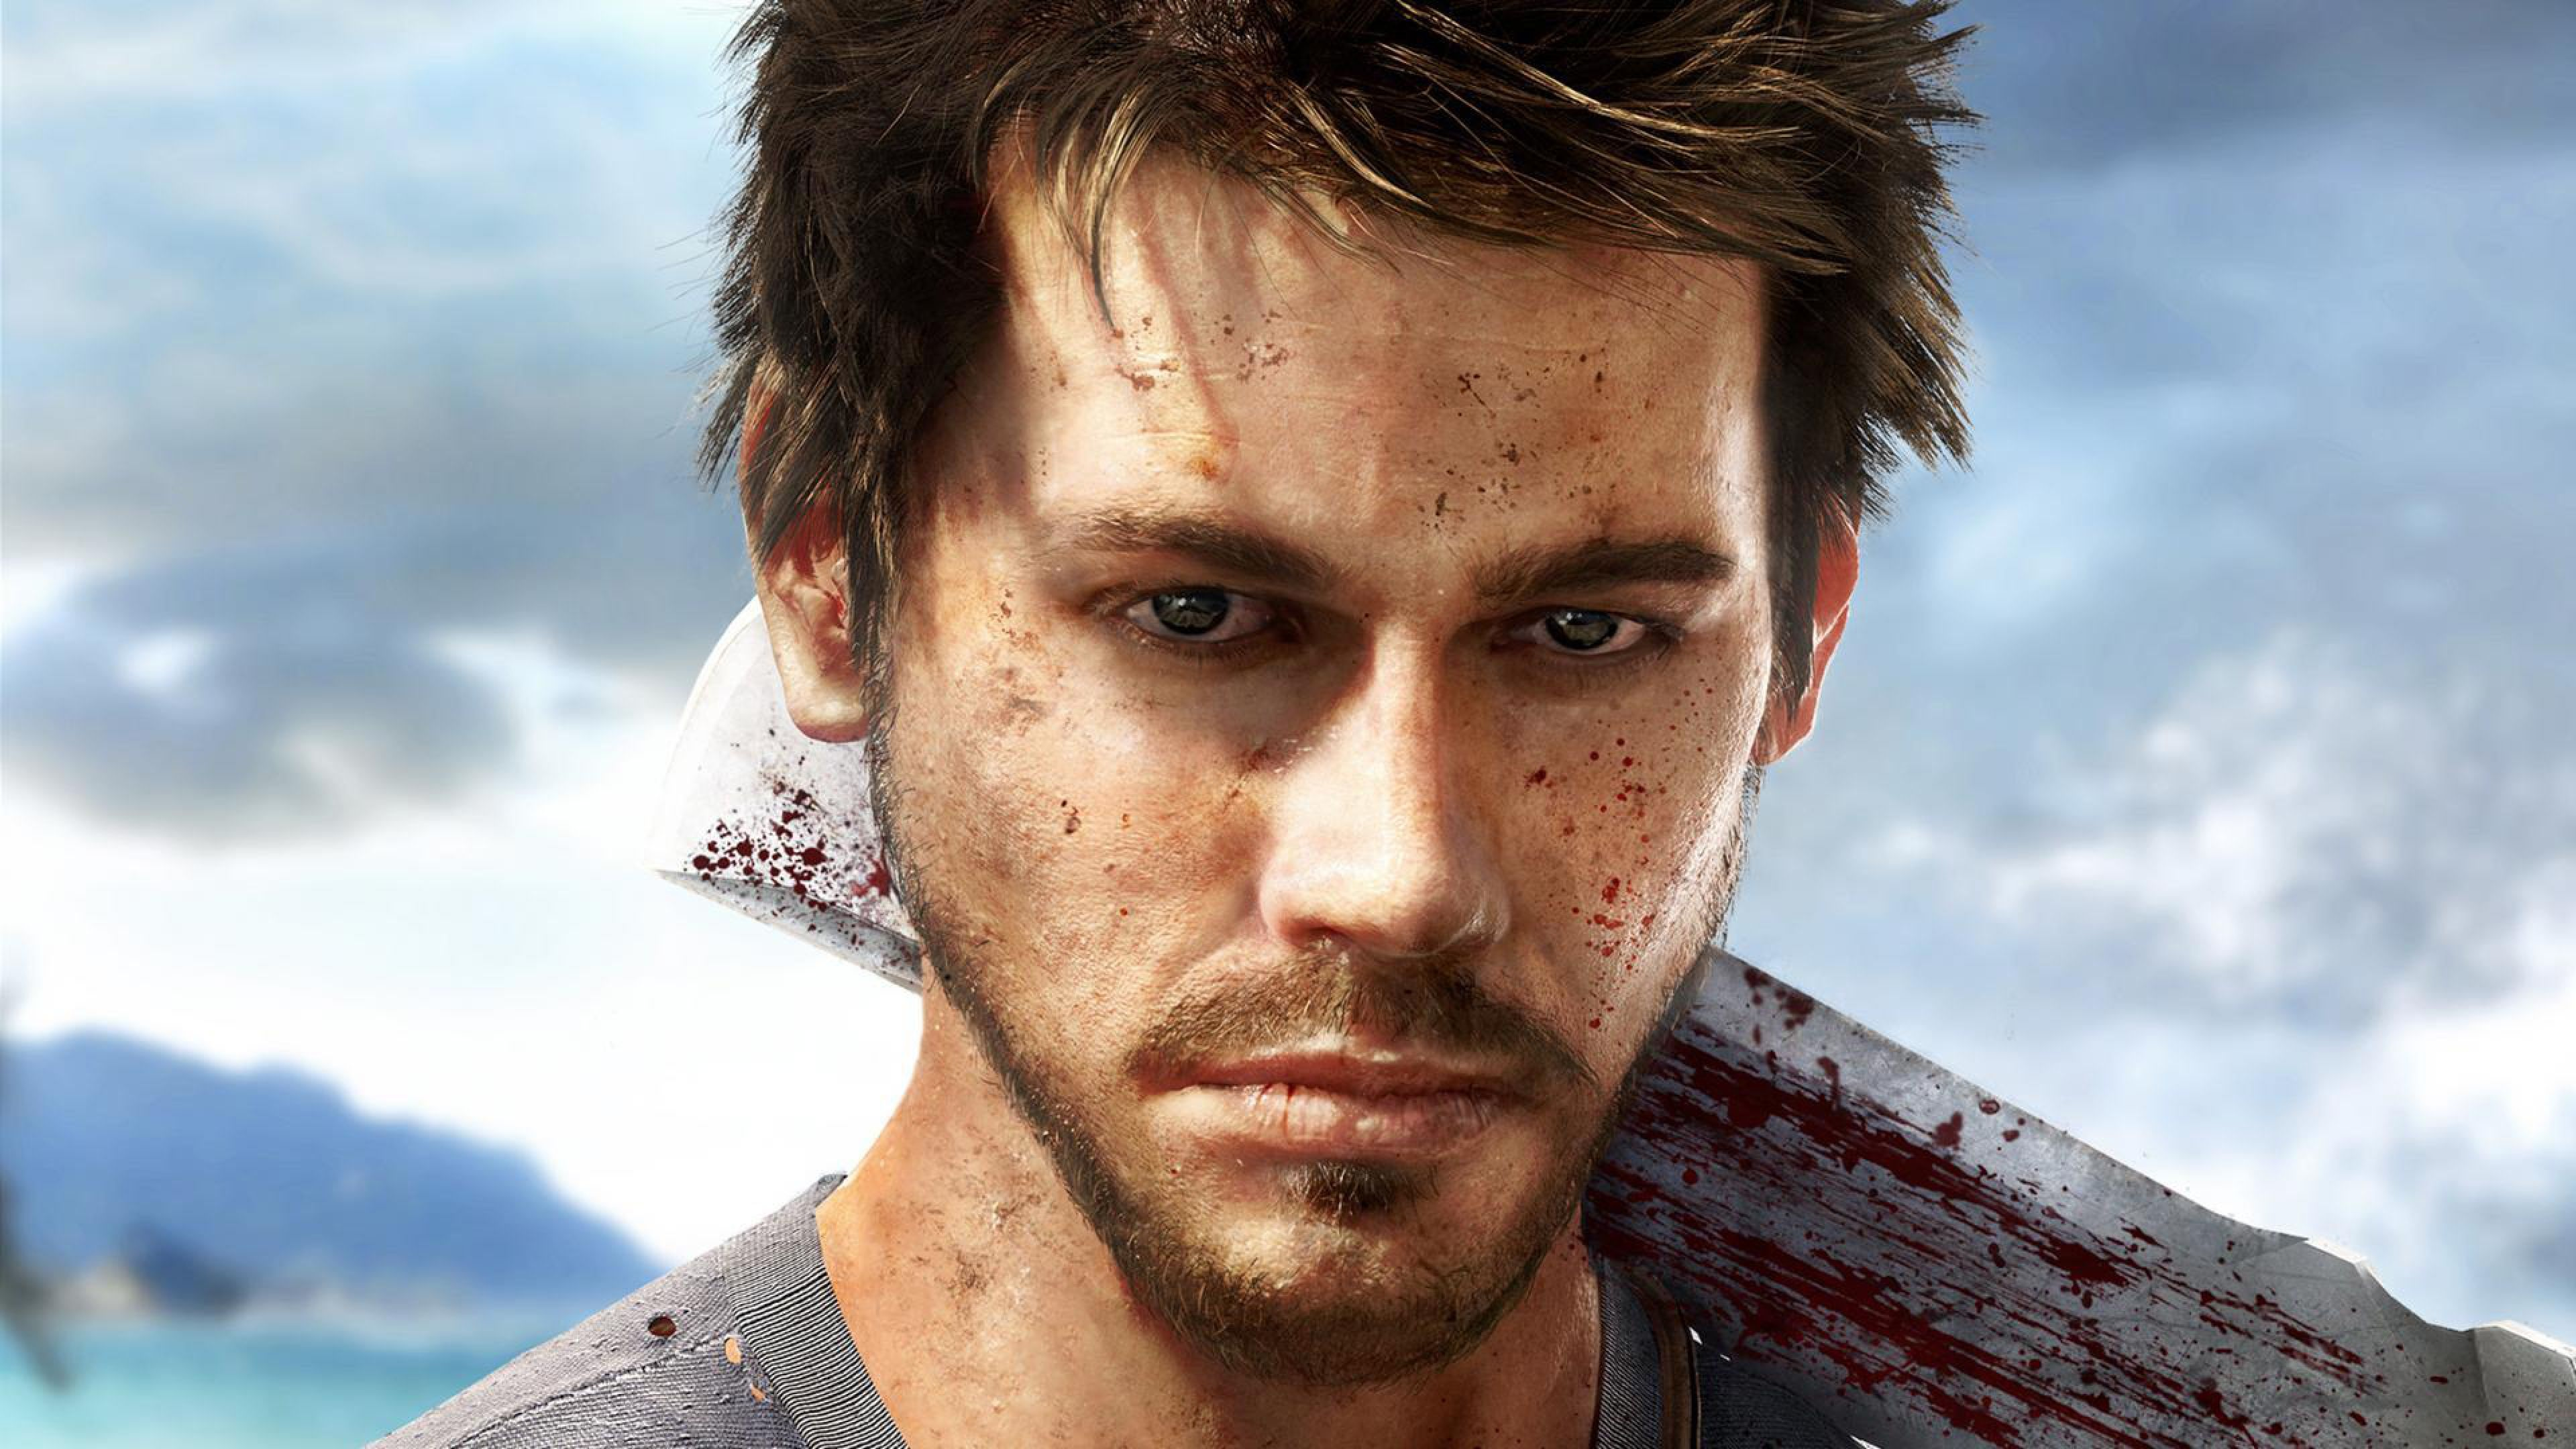 Far Cry wallpaper Games Pinterest Change and Wallpapers